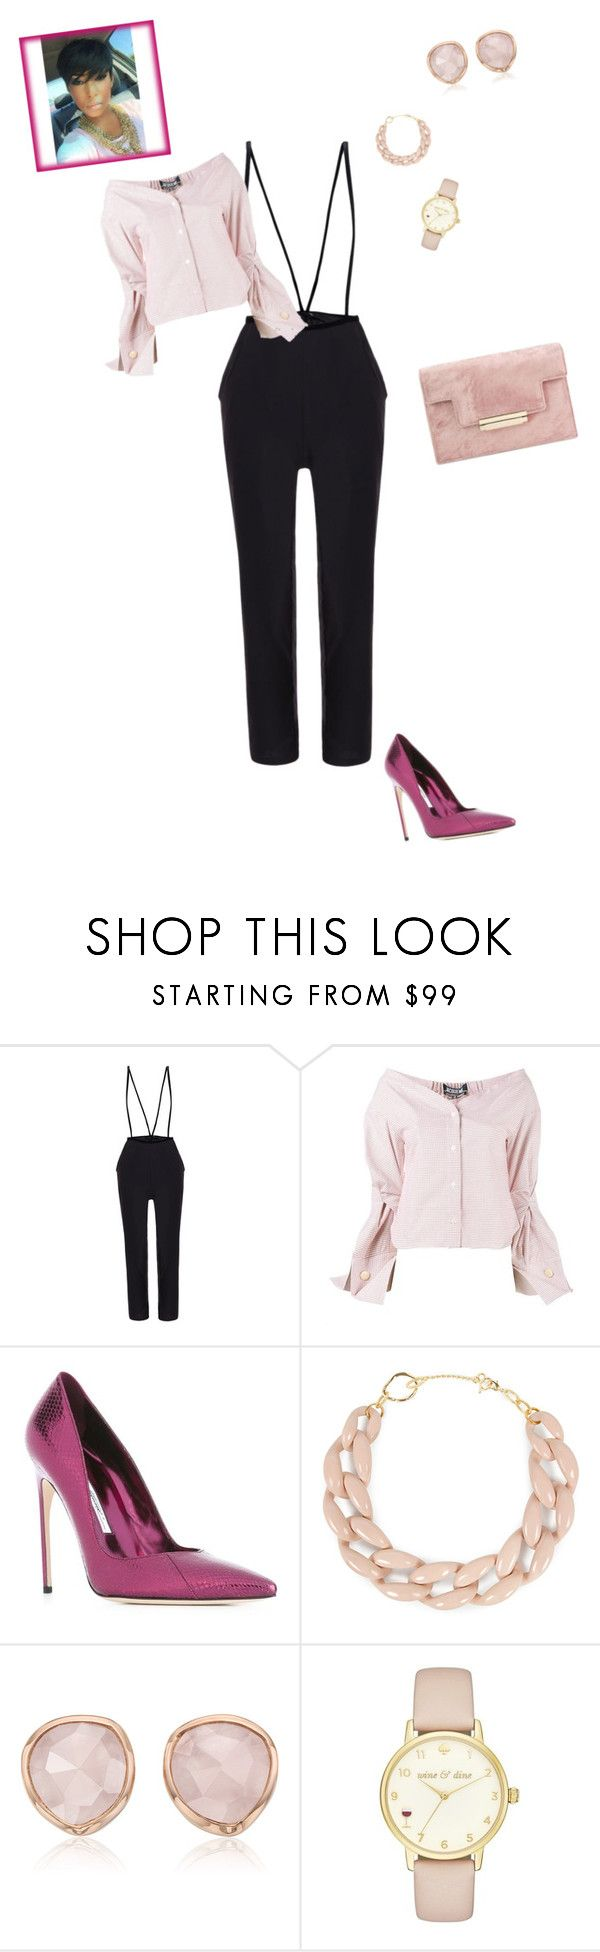 """""""the Wife"""" by lady-jordan ❤ liked on Polyvore featuring Jacquemus, Brian Atwood, DIANA BROUSSARD, Monica Vinader and Kate Spade"""